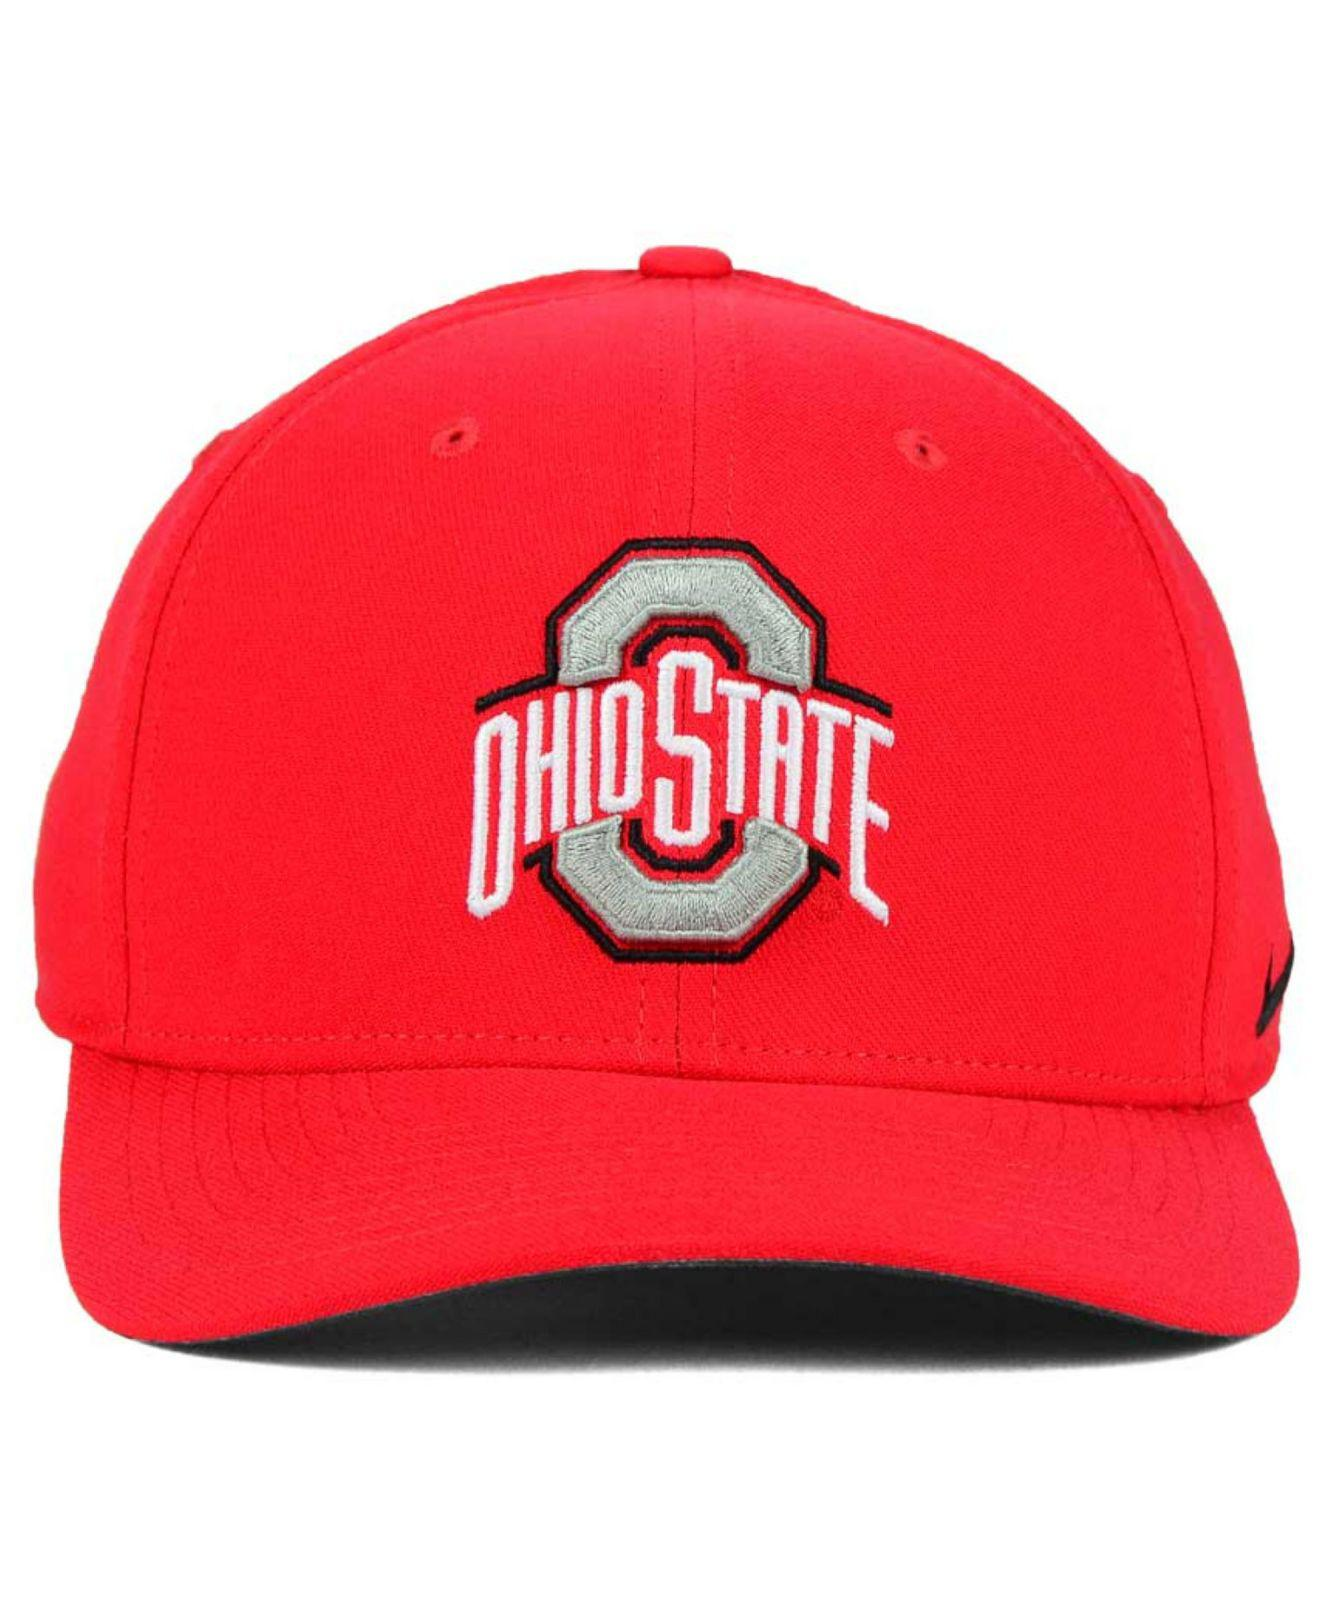 456d4b59c47 Lyst - Nike Ohio State Buckeyes Classic Swoosh Cap in Red for Men